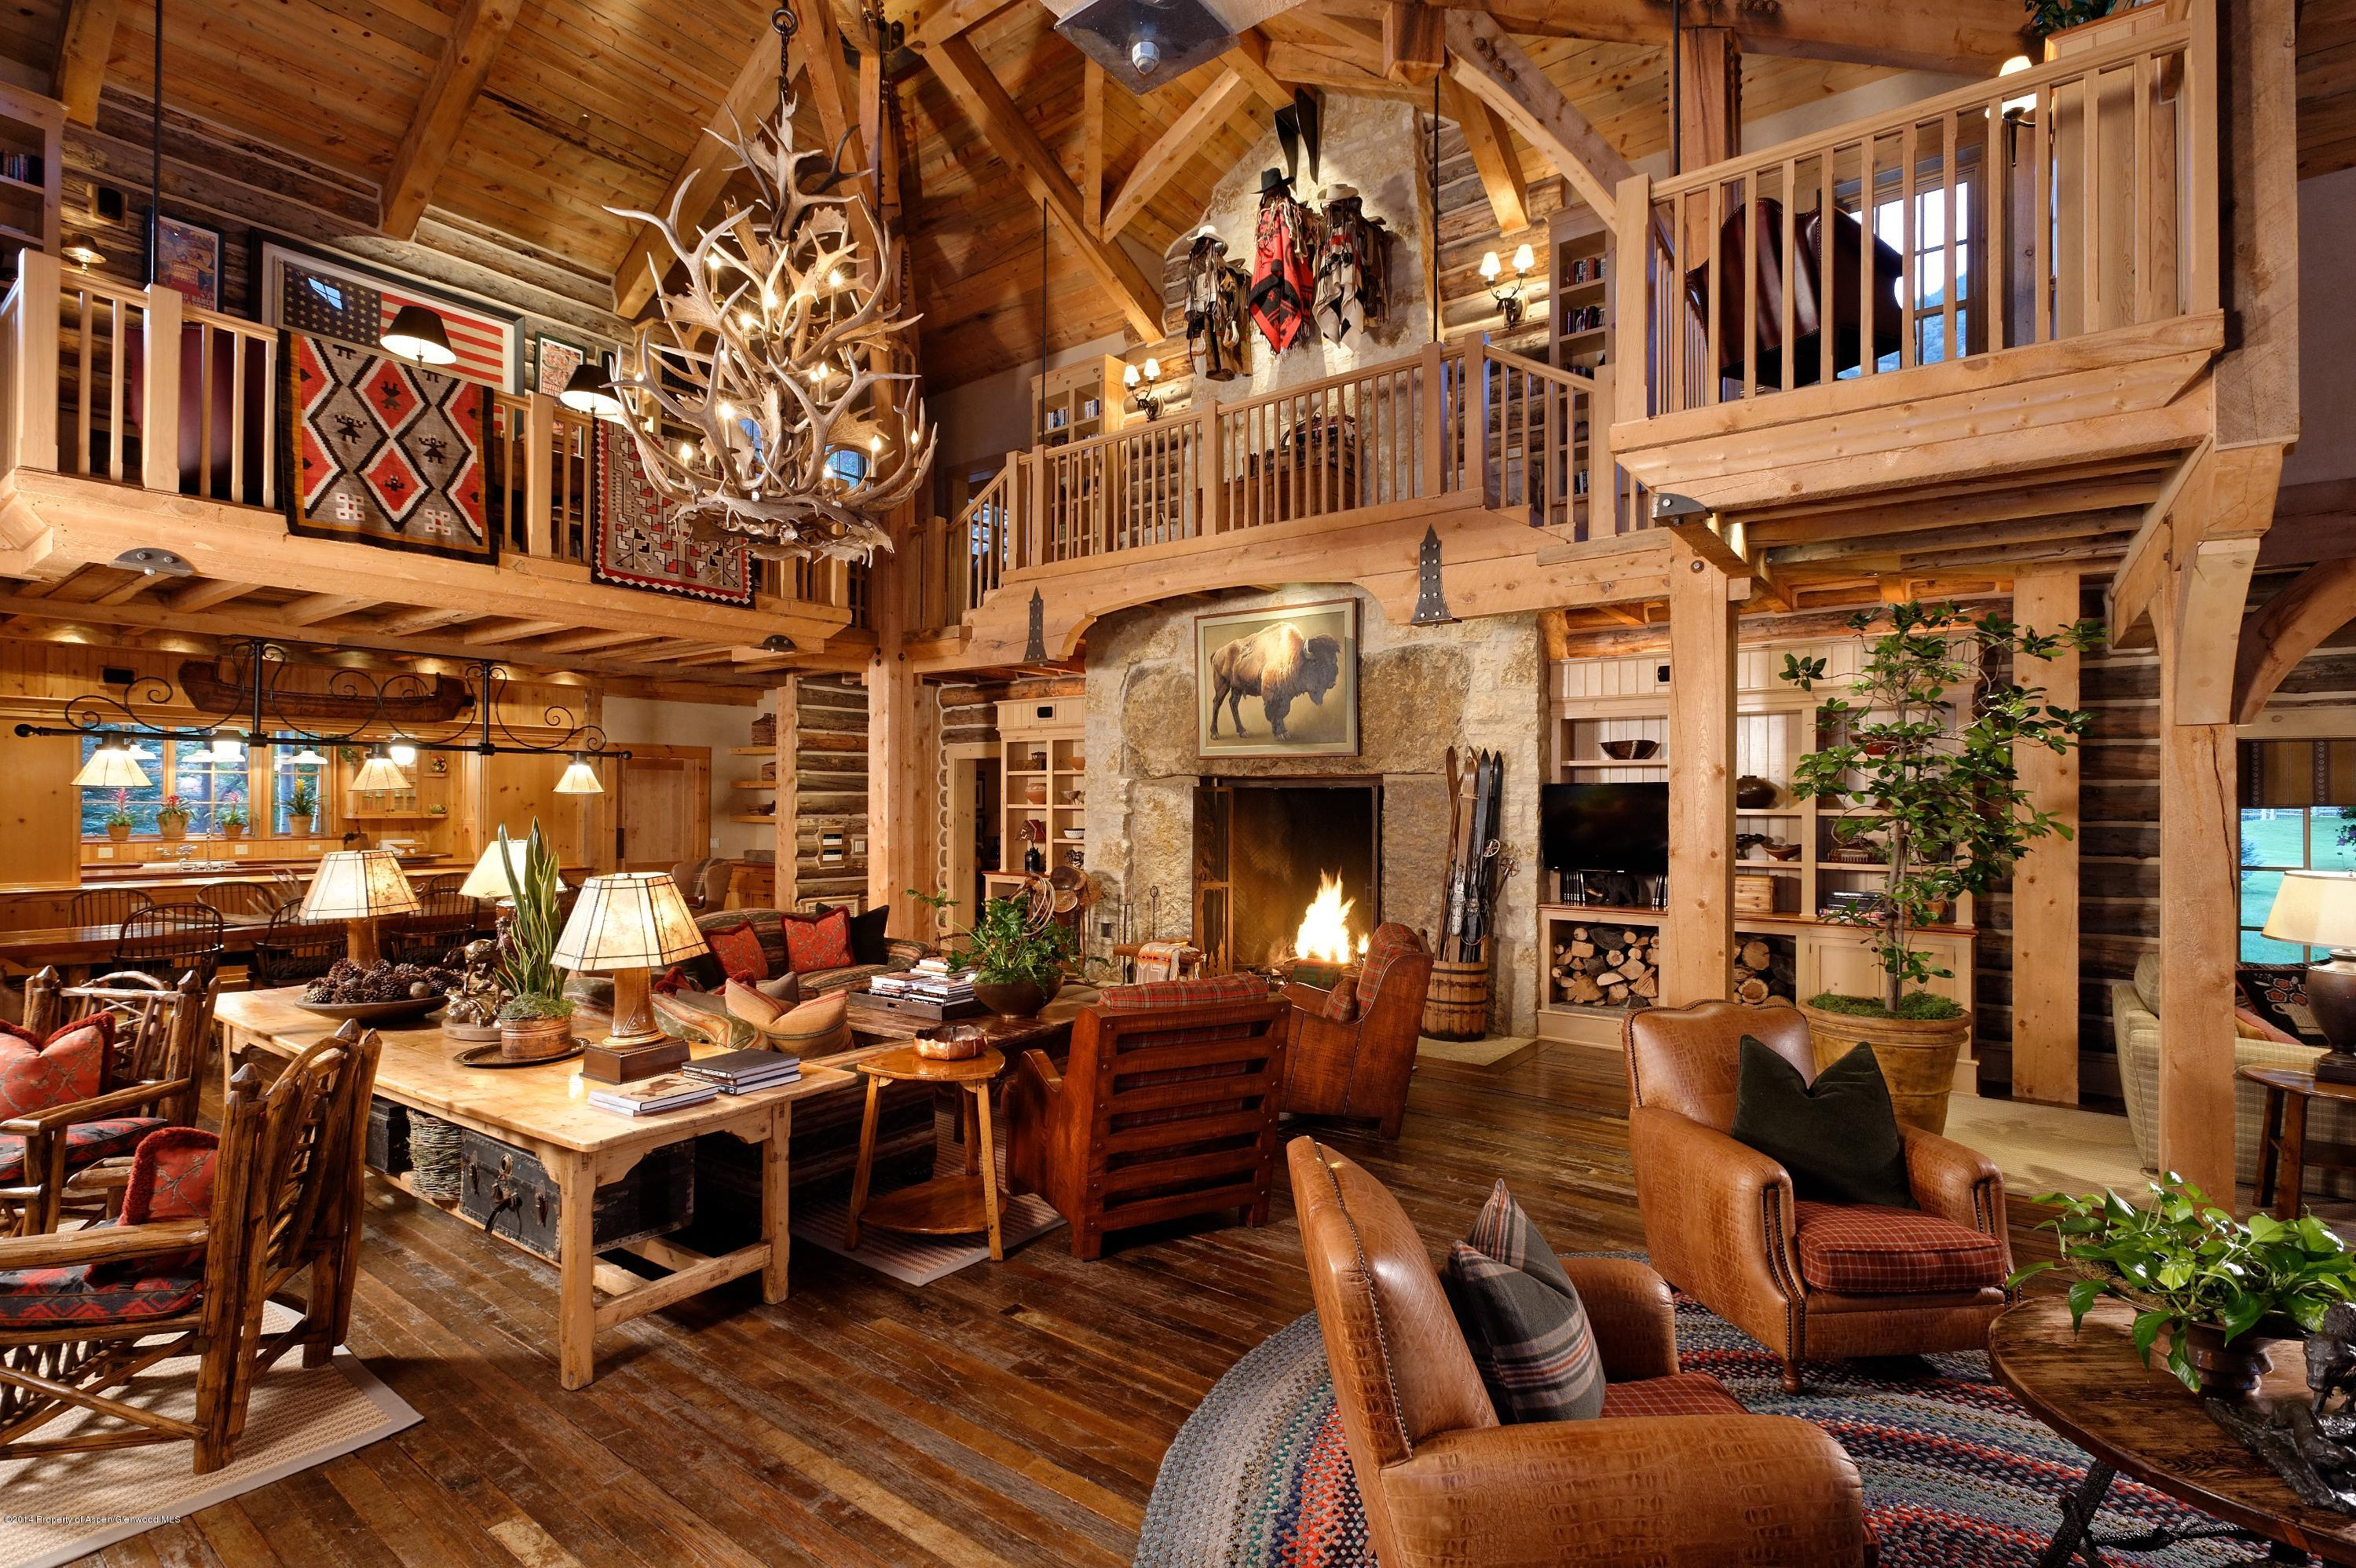 MLS# 135595 - 25 - 50 E River Ranch Road, Snowmass, CO 81654